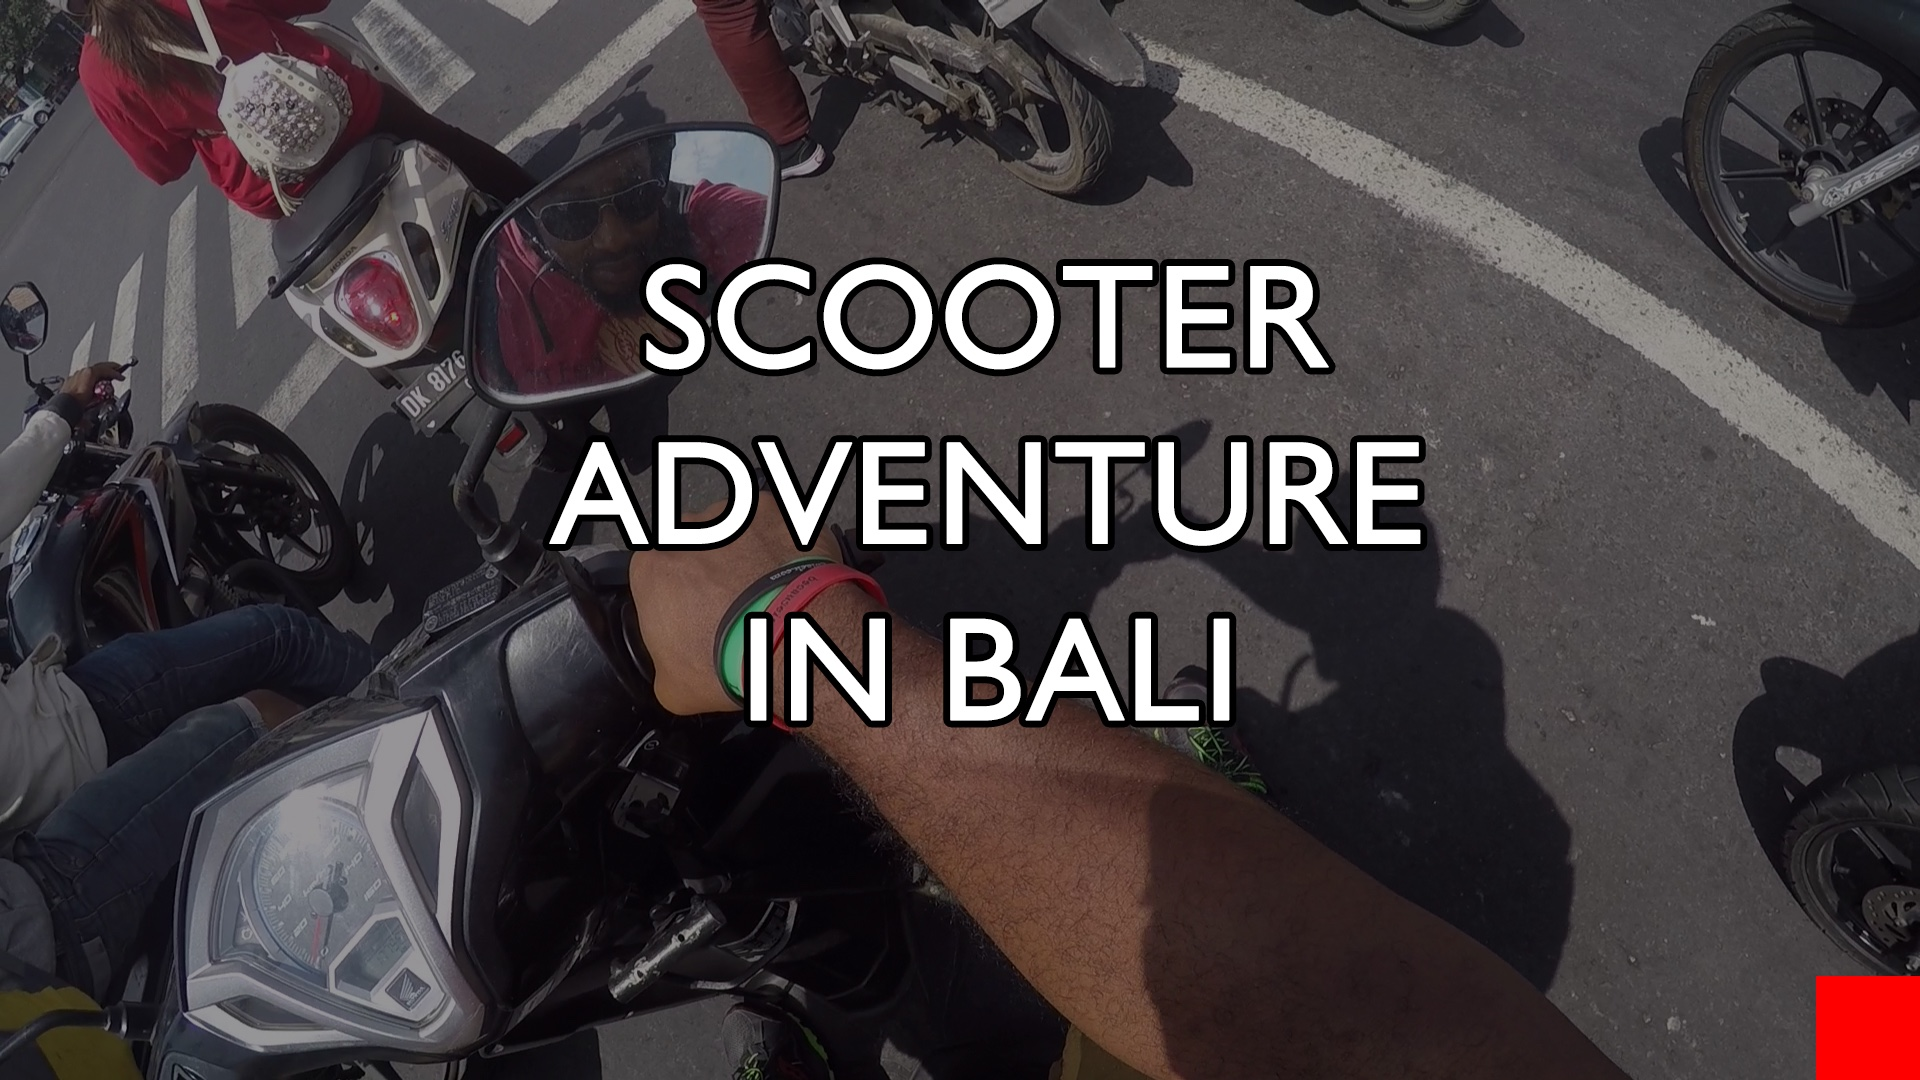 Riding scooters in Bali